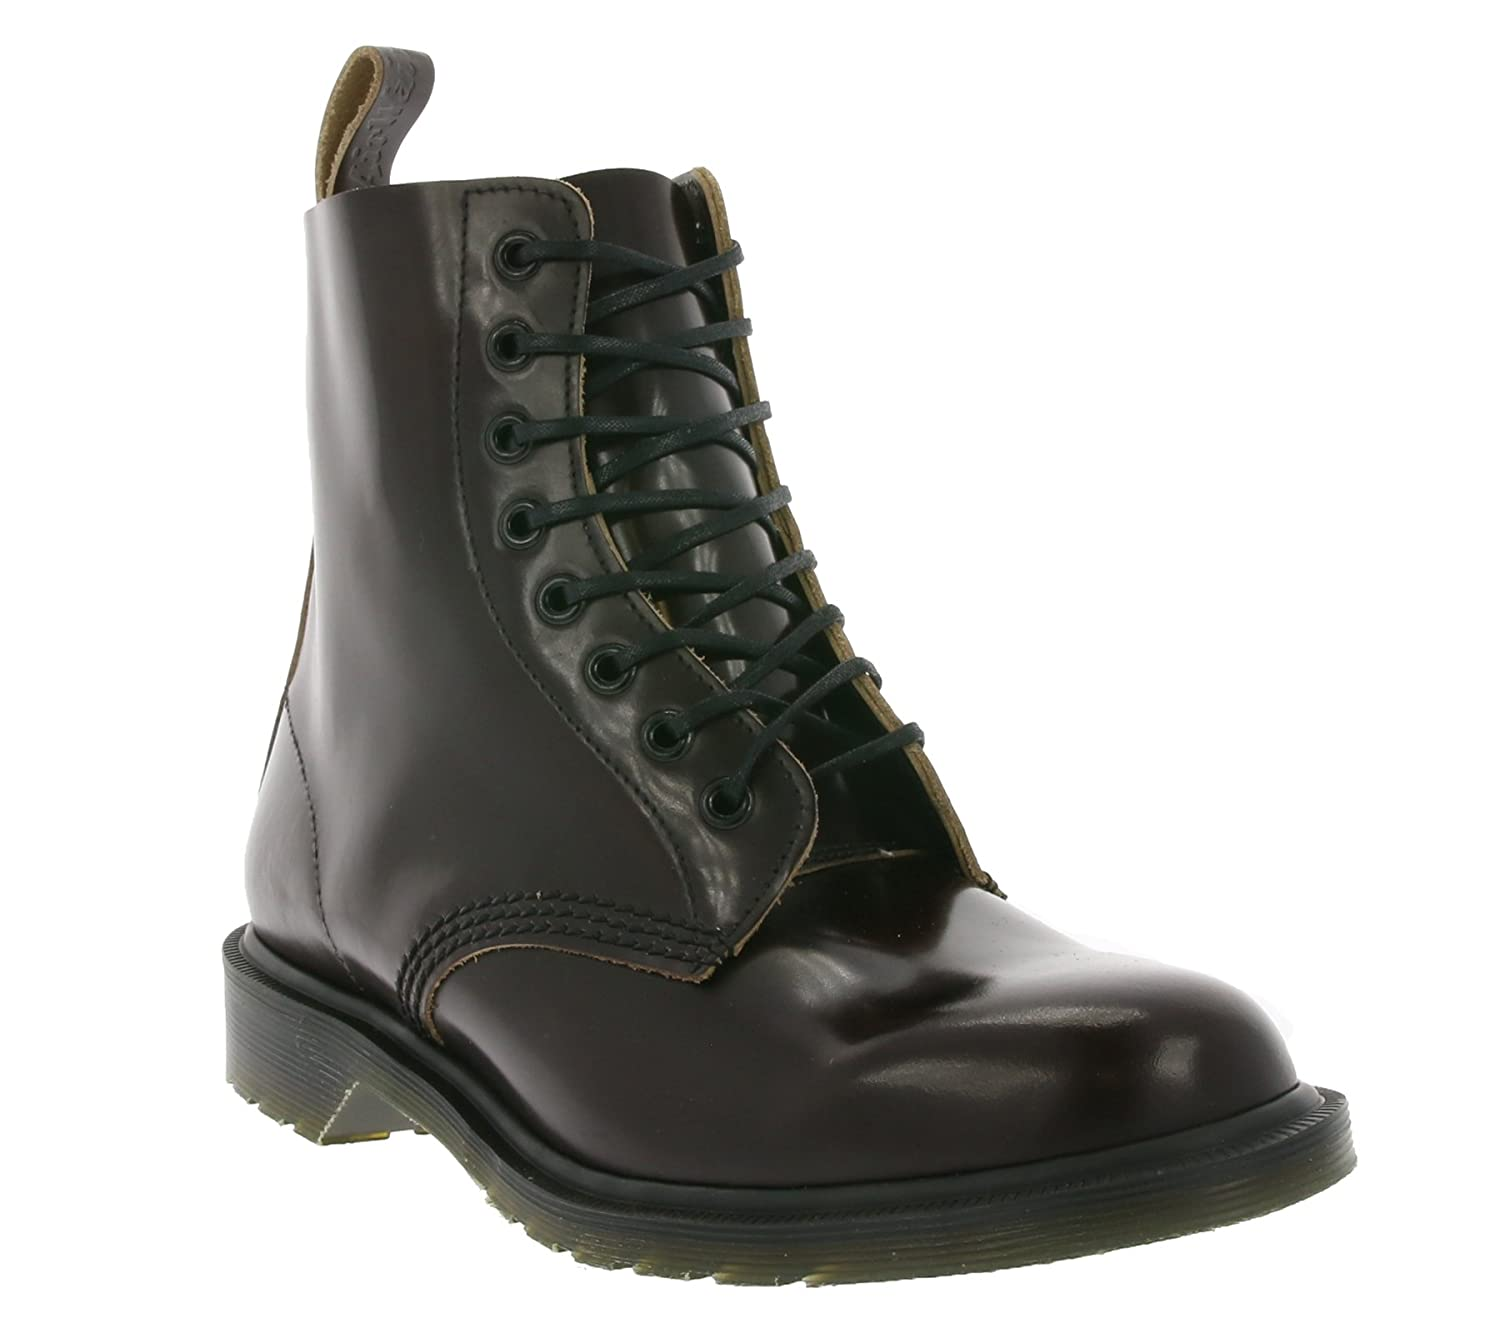 Dr. Martens Pascal B00N25HGZ2 3 M UK (Women's 5 US)|Merlot Boanil Brush